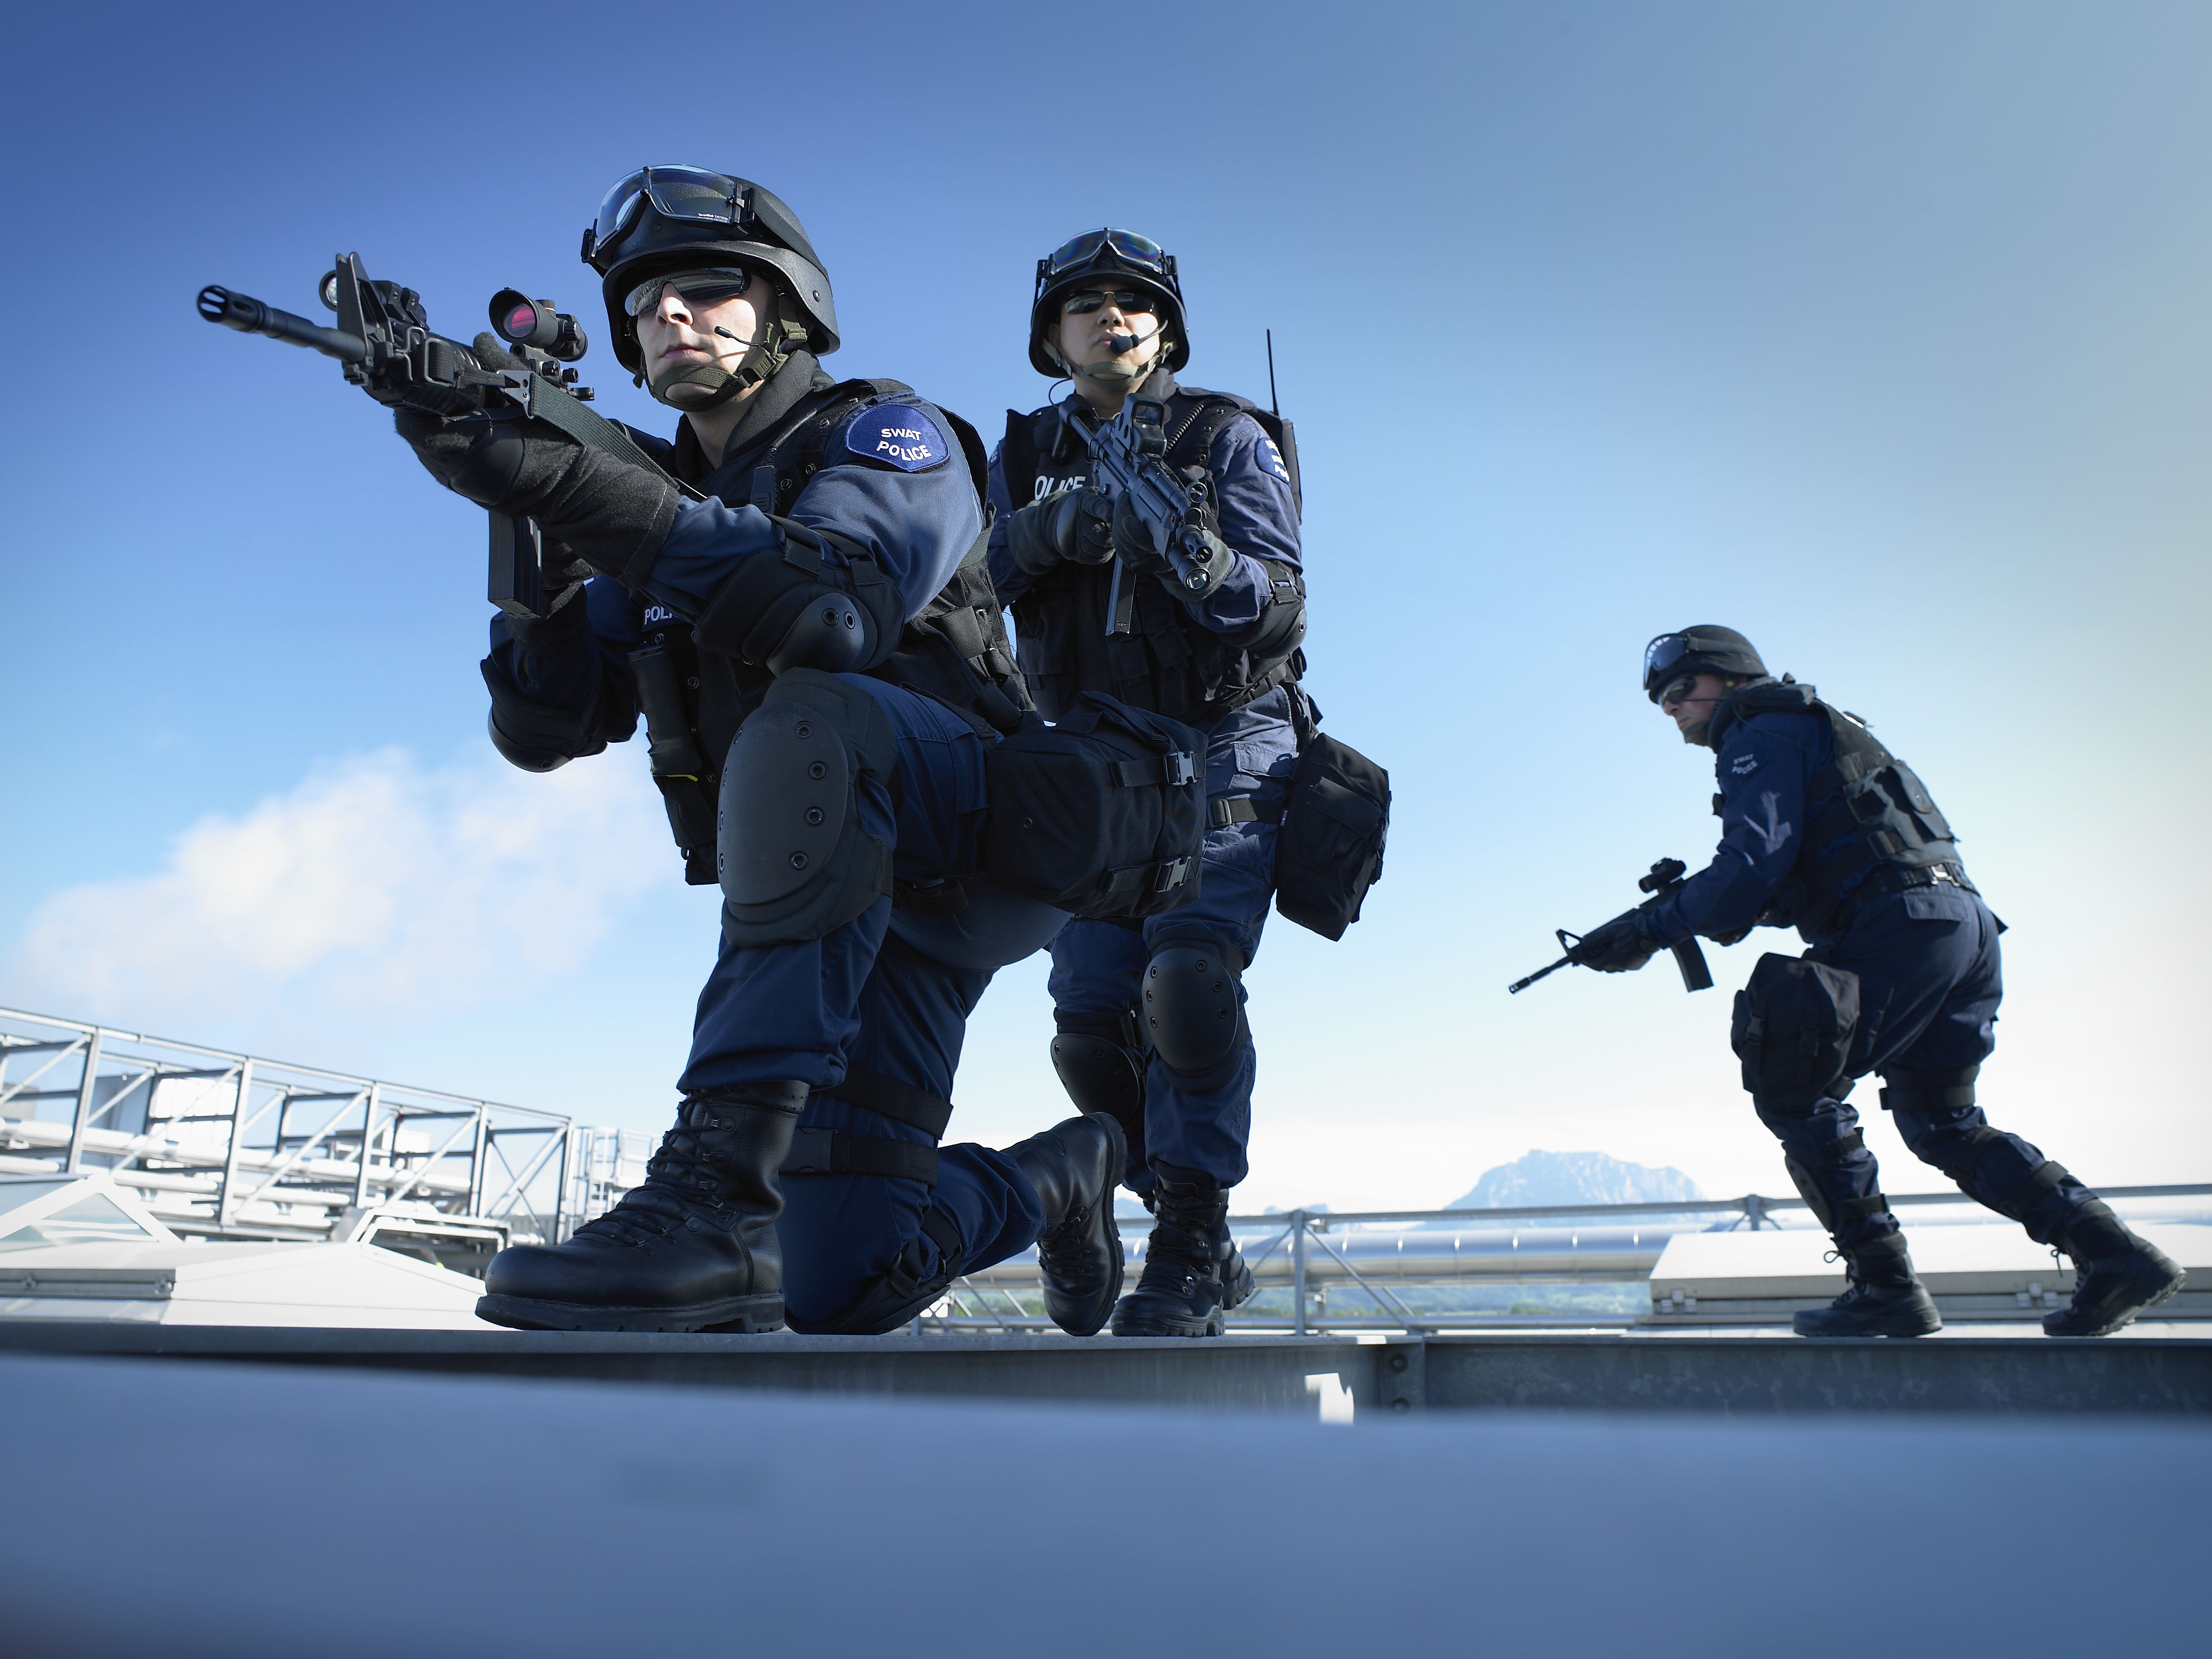 The History and Purpose of SWAT Teams